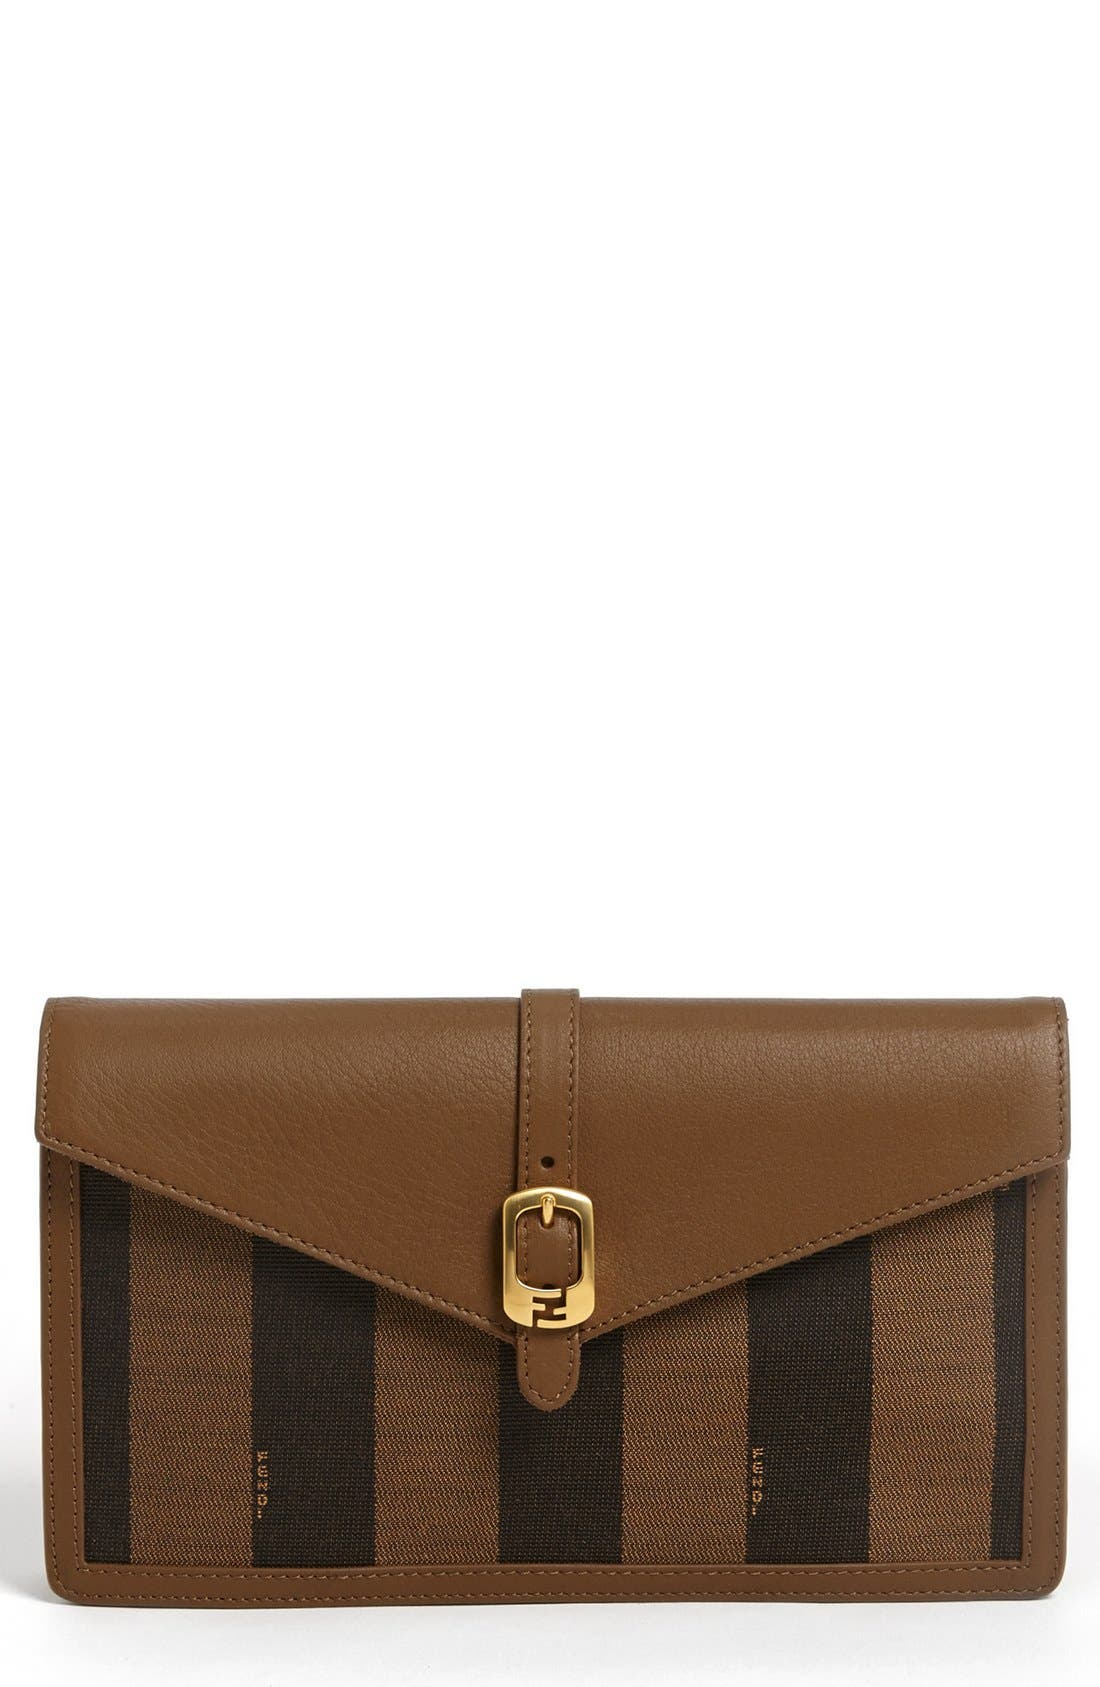 Alternate Image 1 Selected - Fendi 'Pequin' Clutch